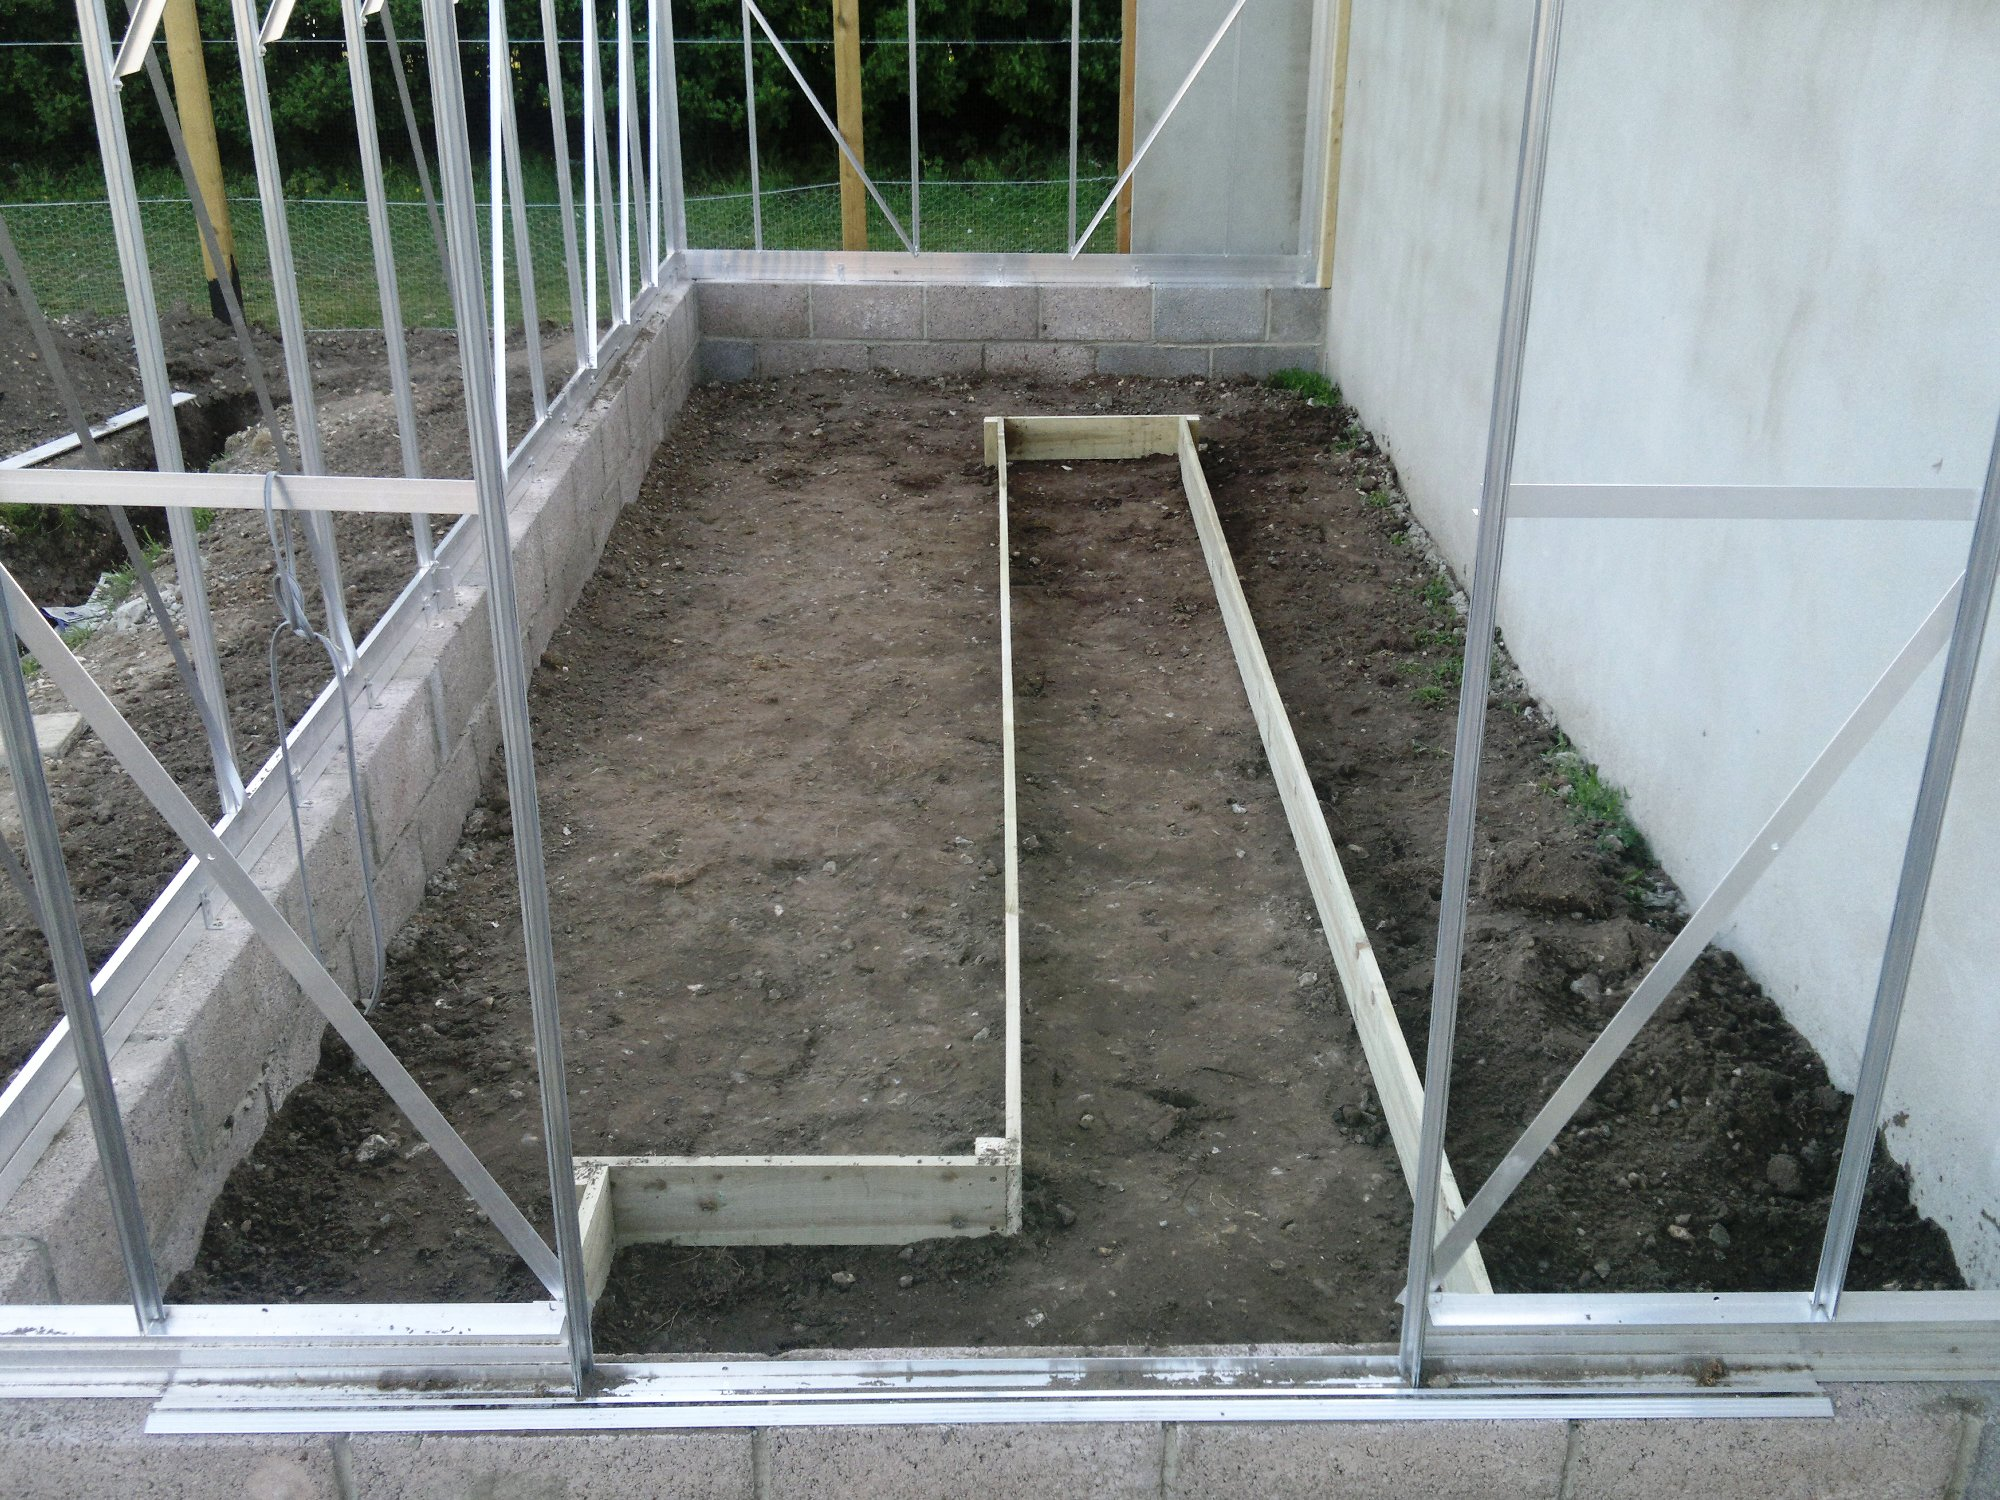 Glasshouse beds laid out